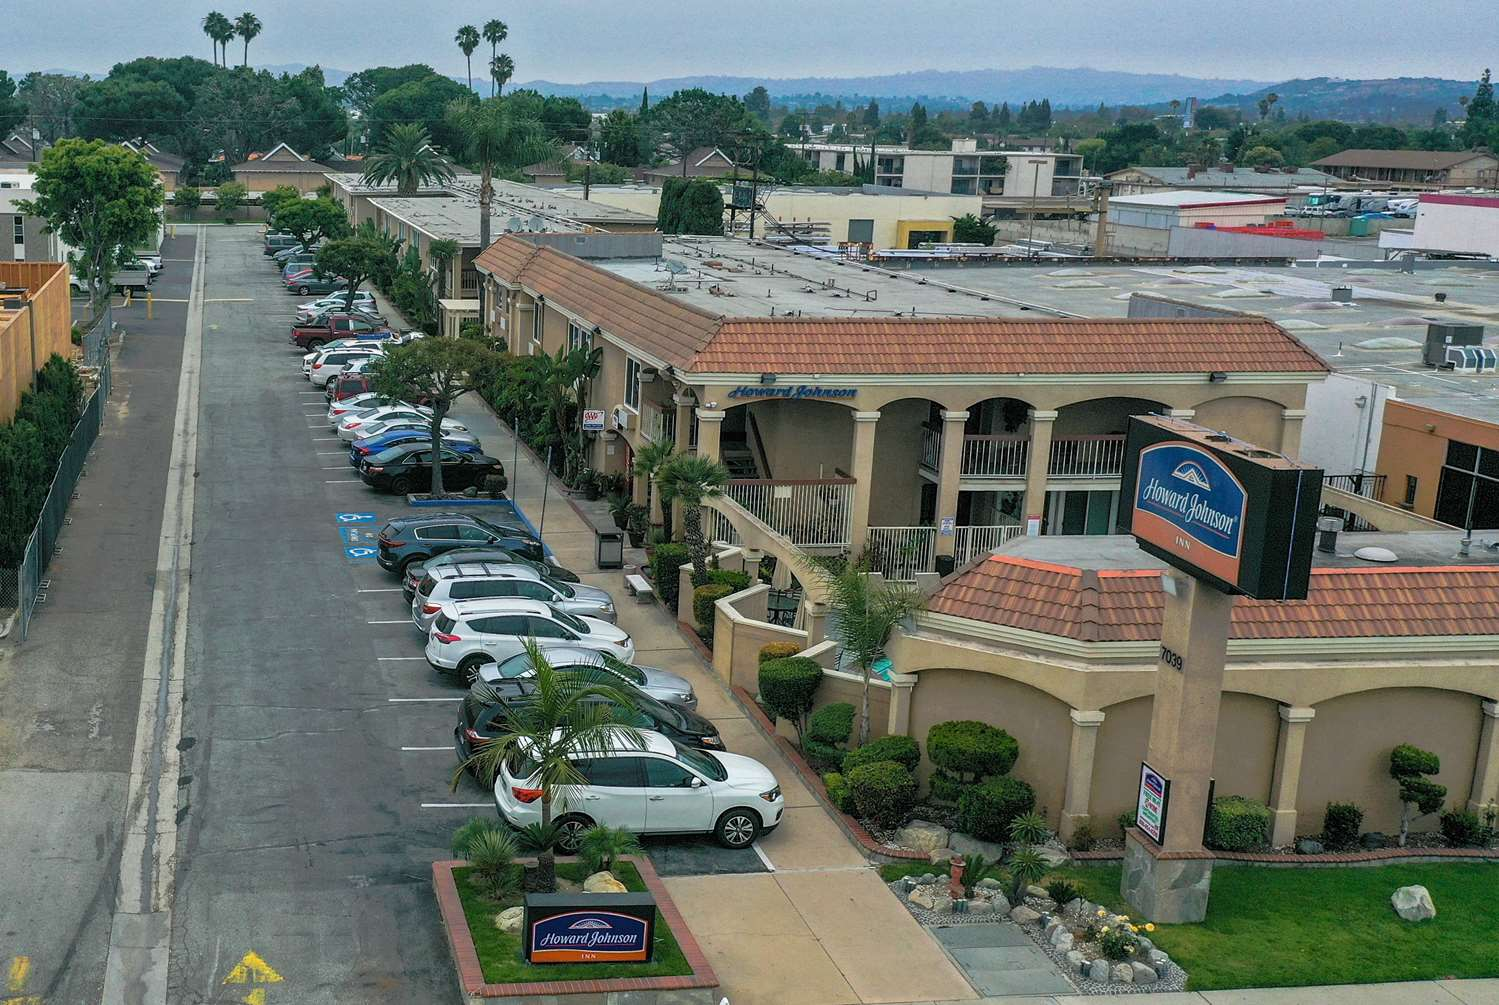 Hotels Motels Near Knotts Berry Farm